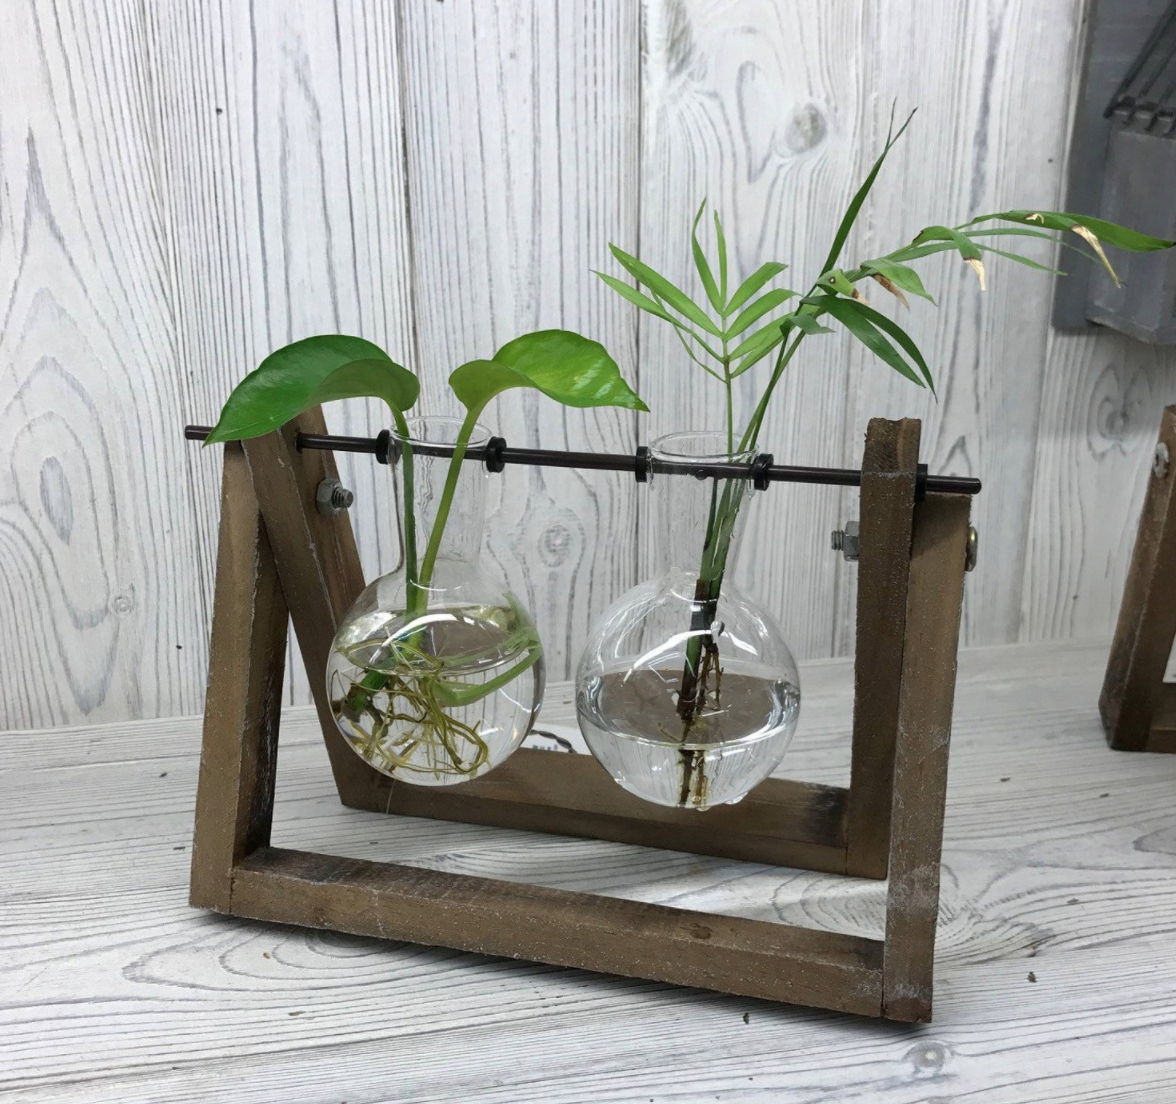 Recycled plant stands, Etsy UK